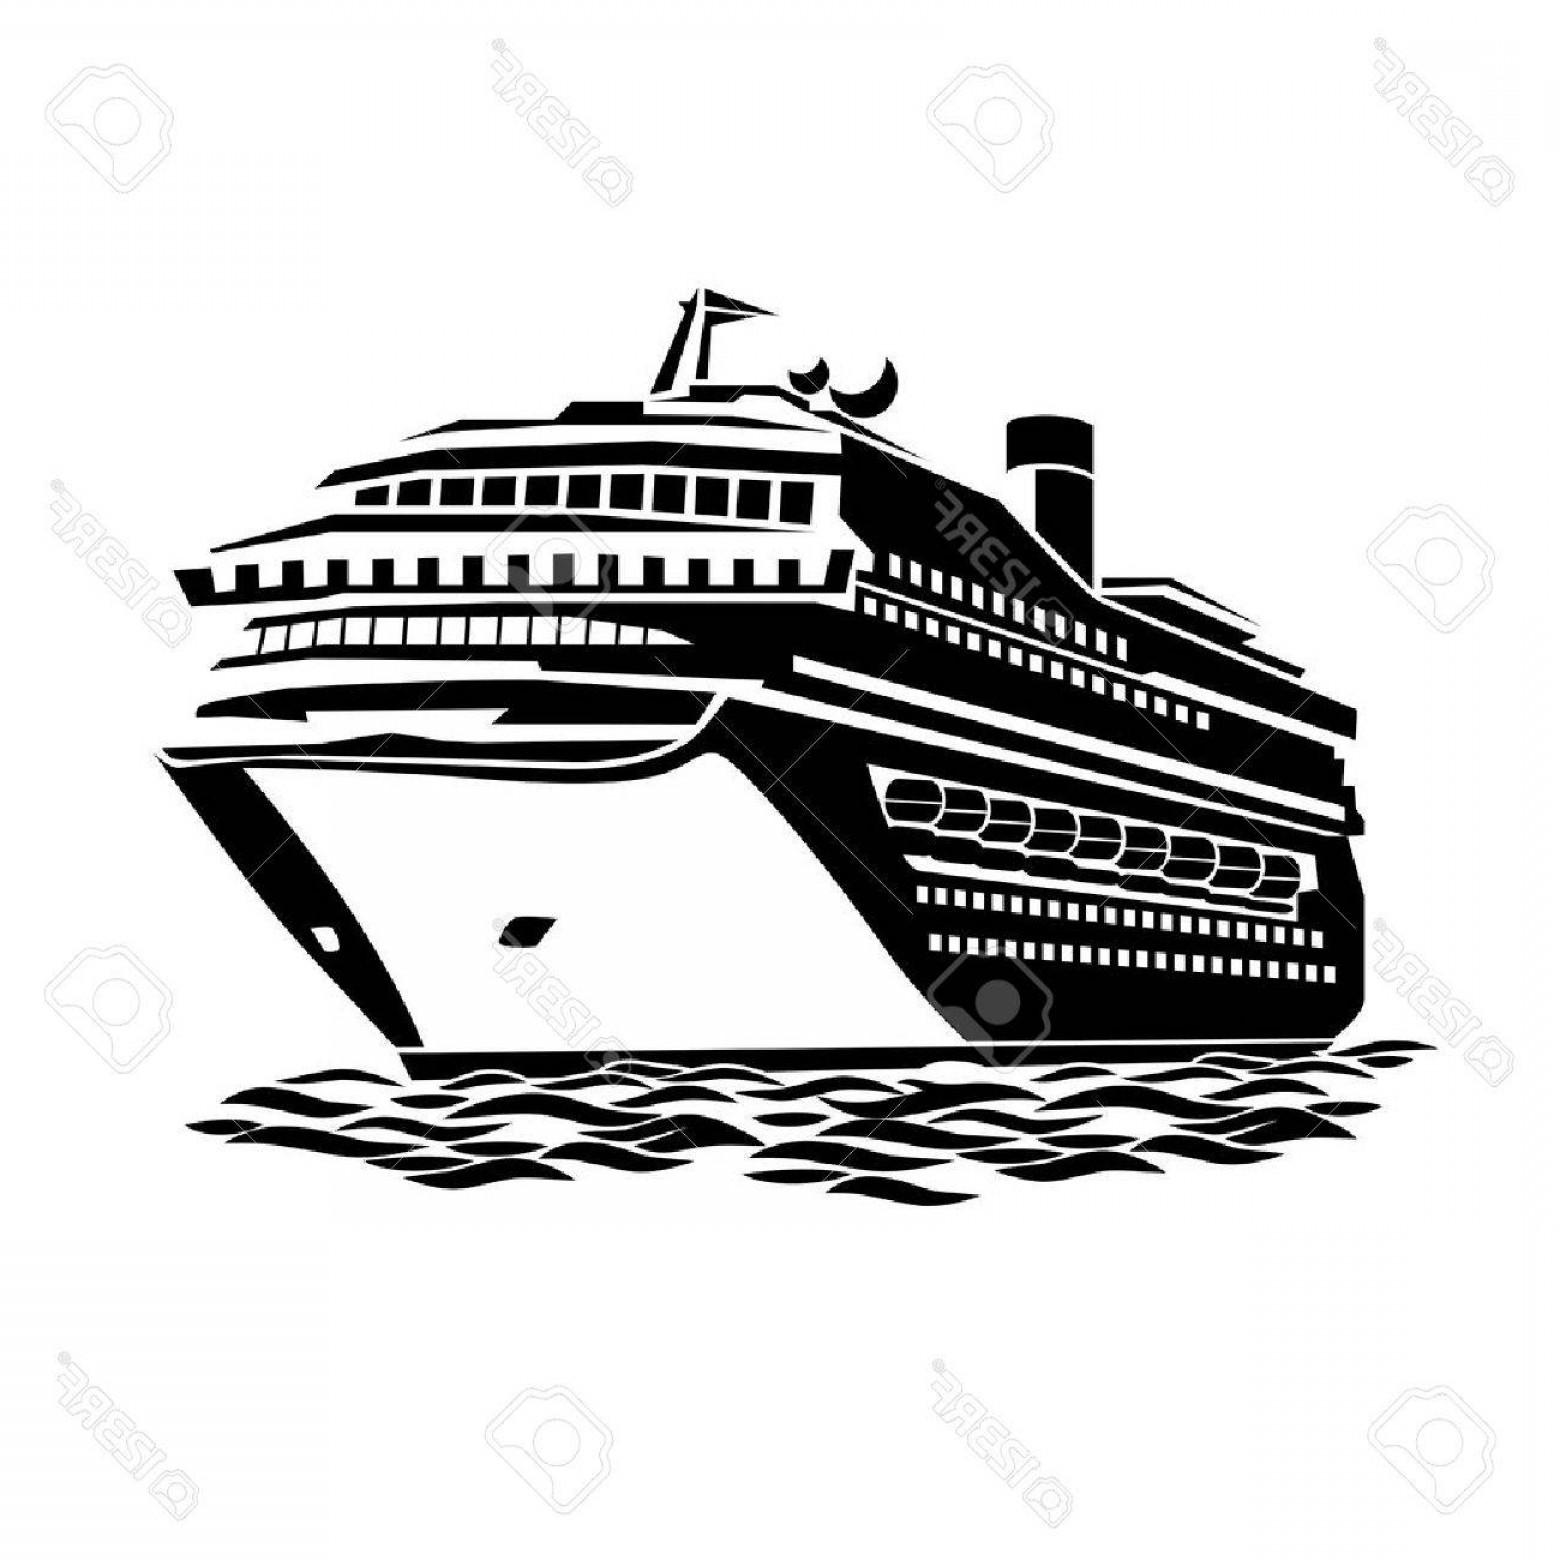 Waves With Cruise Ship Silhouette Vector: Photostock Vector Stylized Illustration Of A Large Cruise Ship On The Ocean Waves